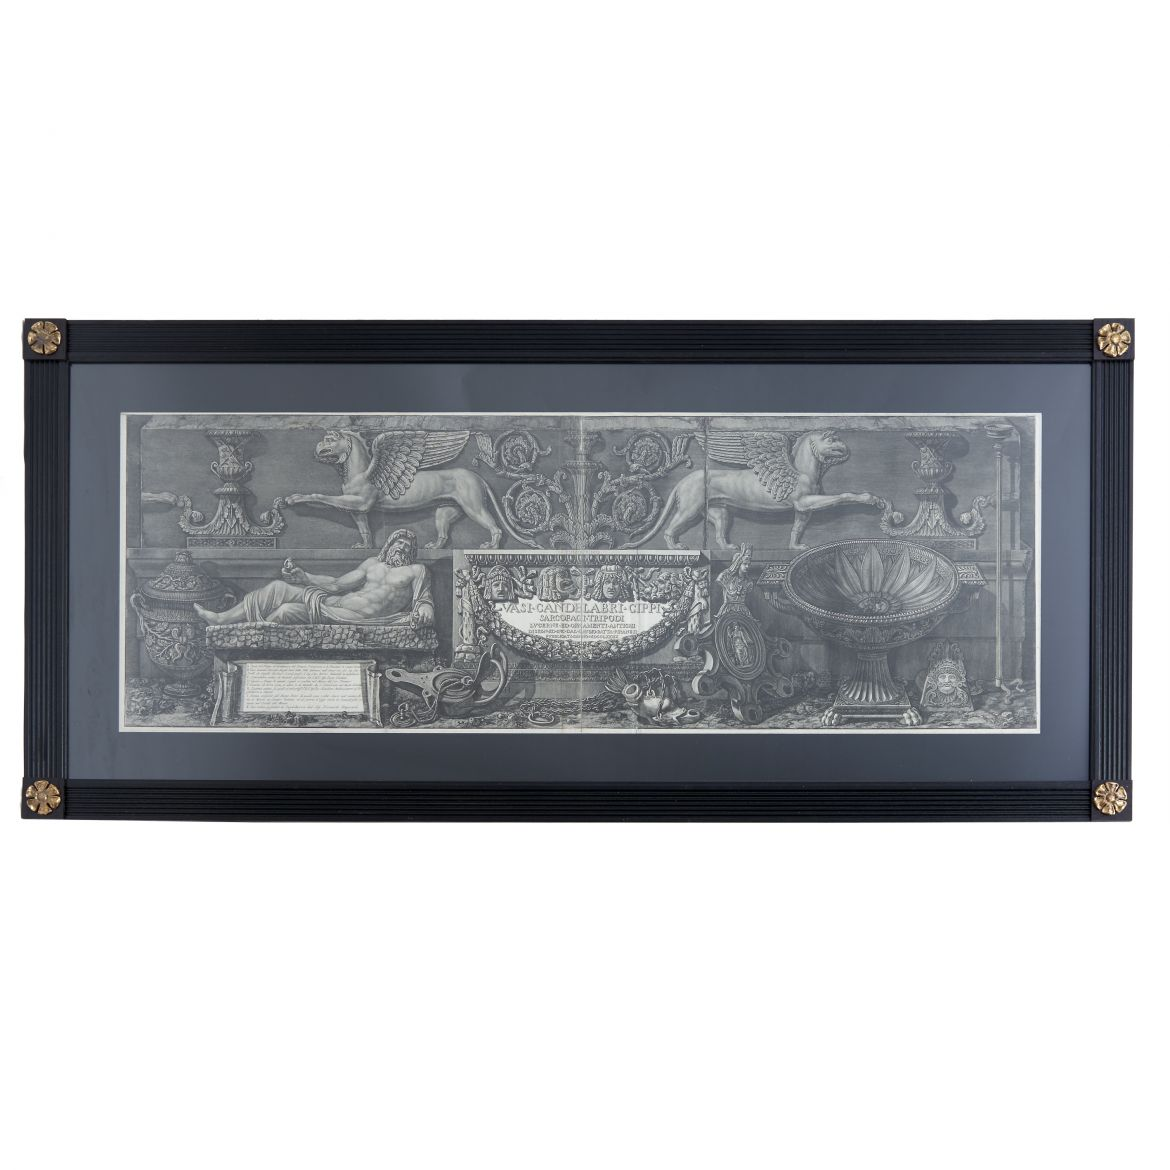 Large Piranesi Etching